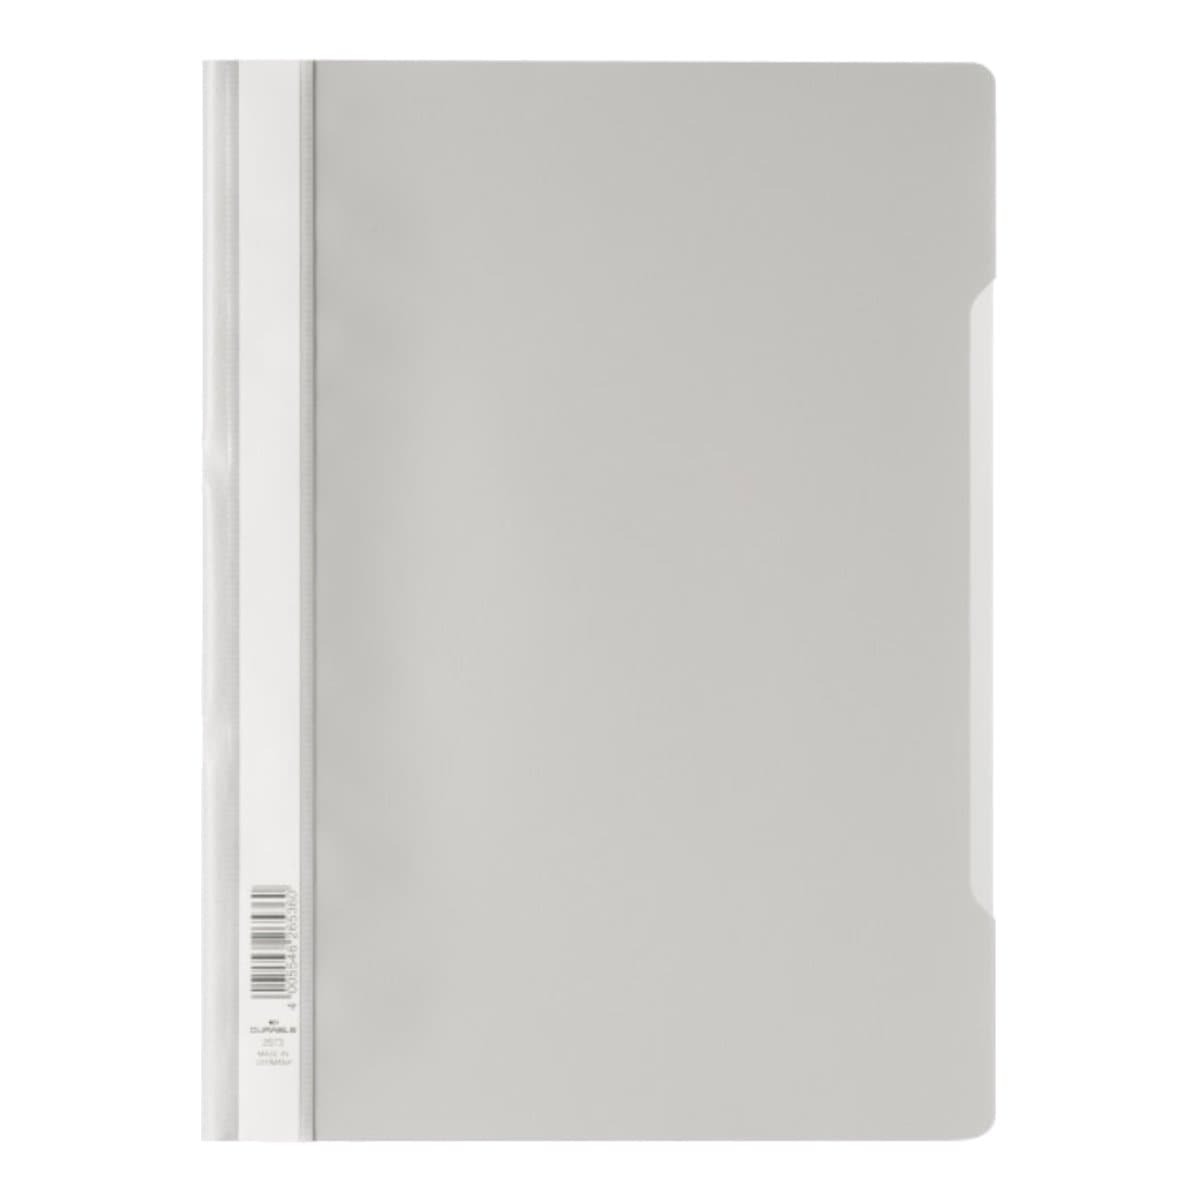 Durable Clear View Folder - Economy A4, Grey